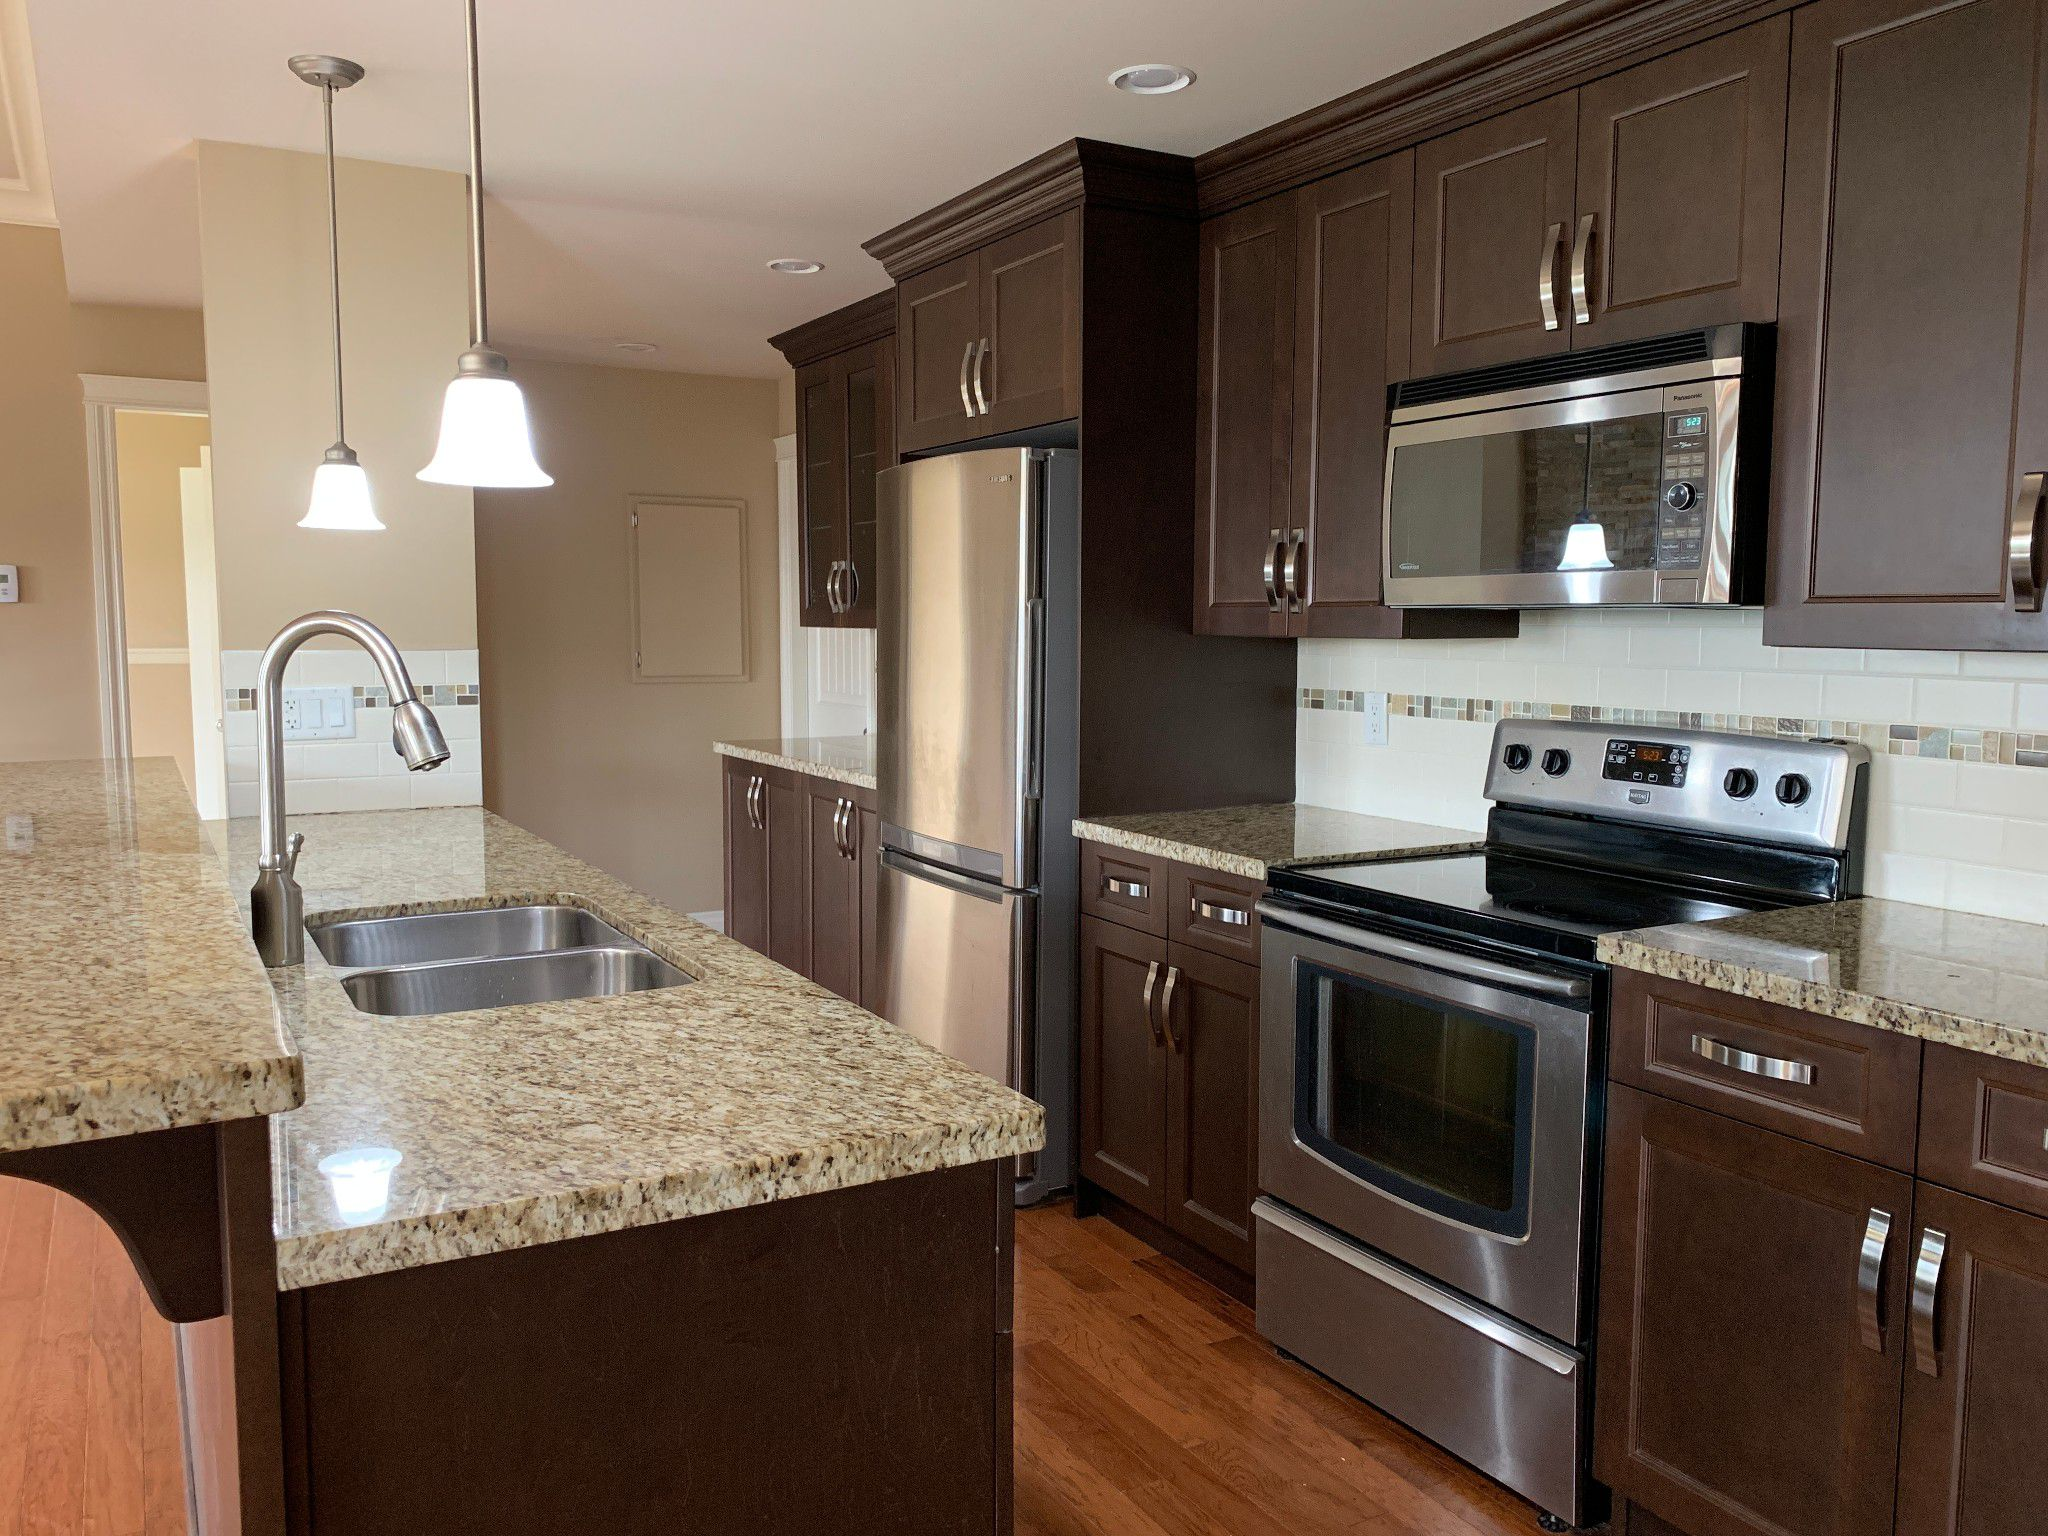 Main Photo: BSMT 3975 Caves Court in Abbotsford: Abbotsford East Condo for rent